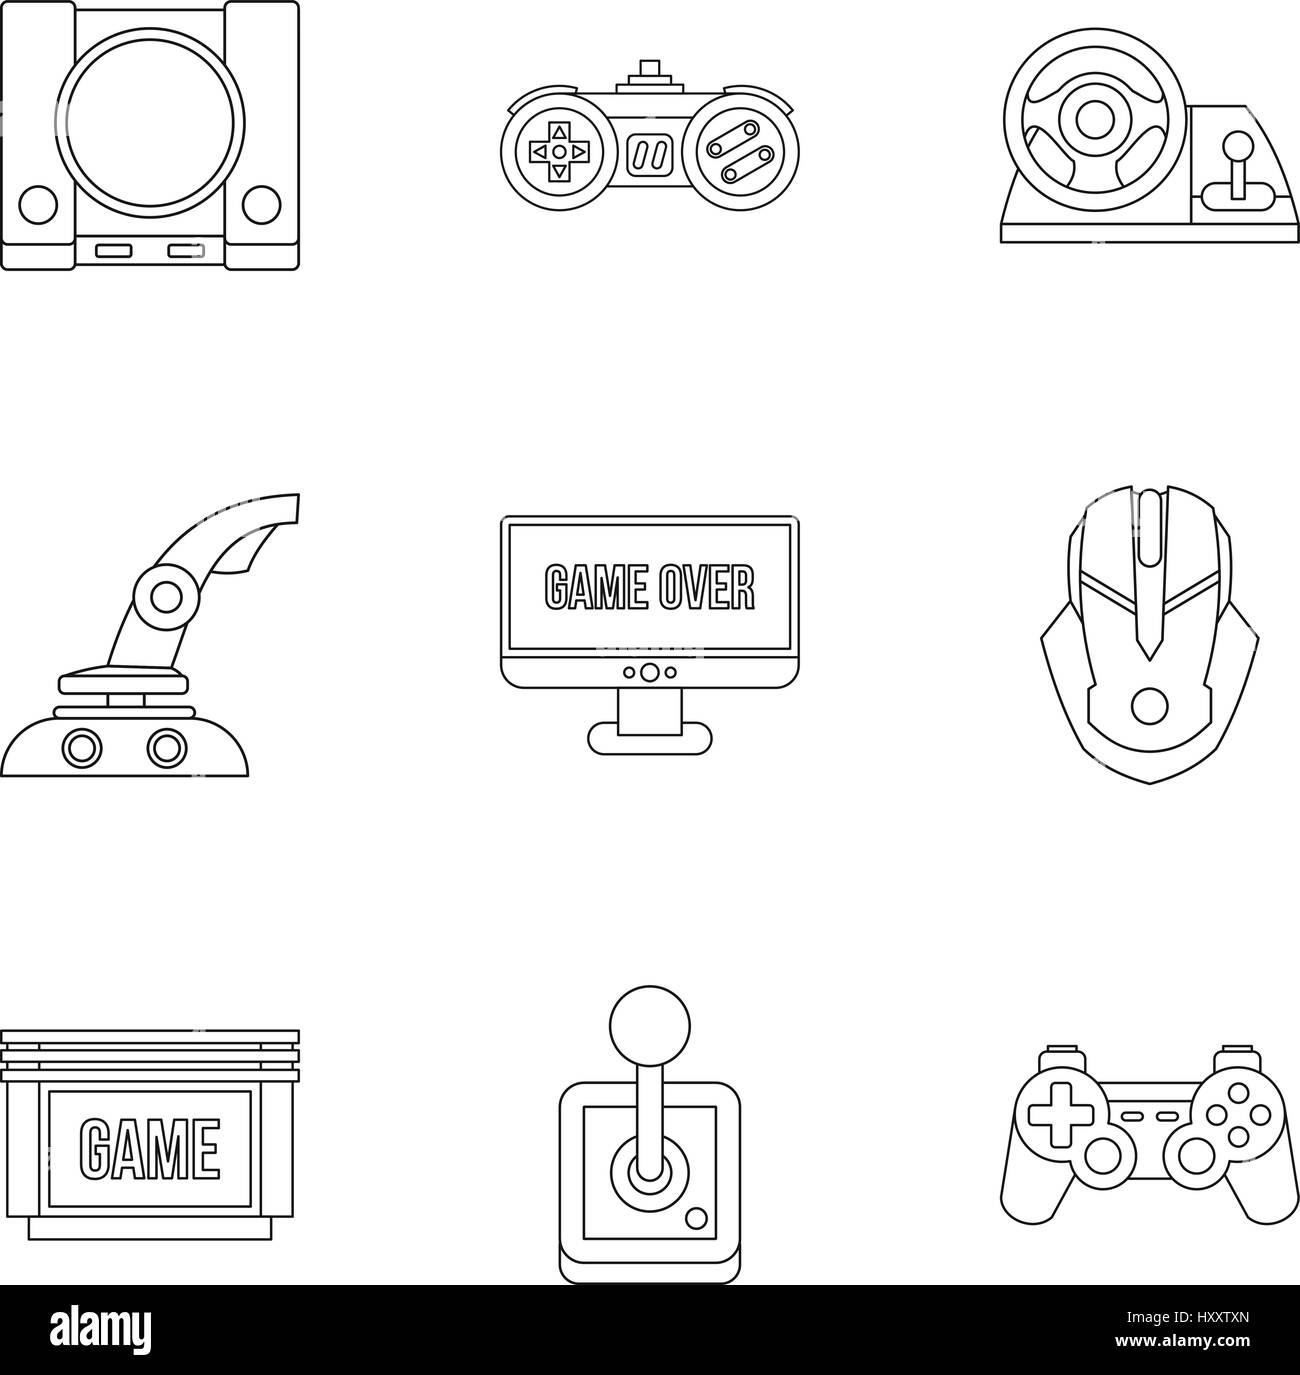 Fantasy games icons set, outline style - Stock Image